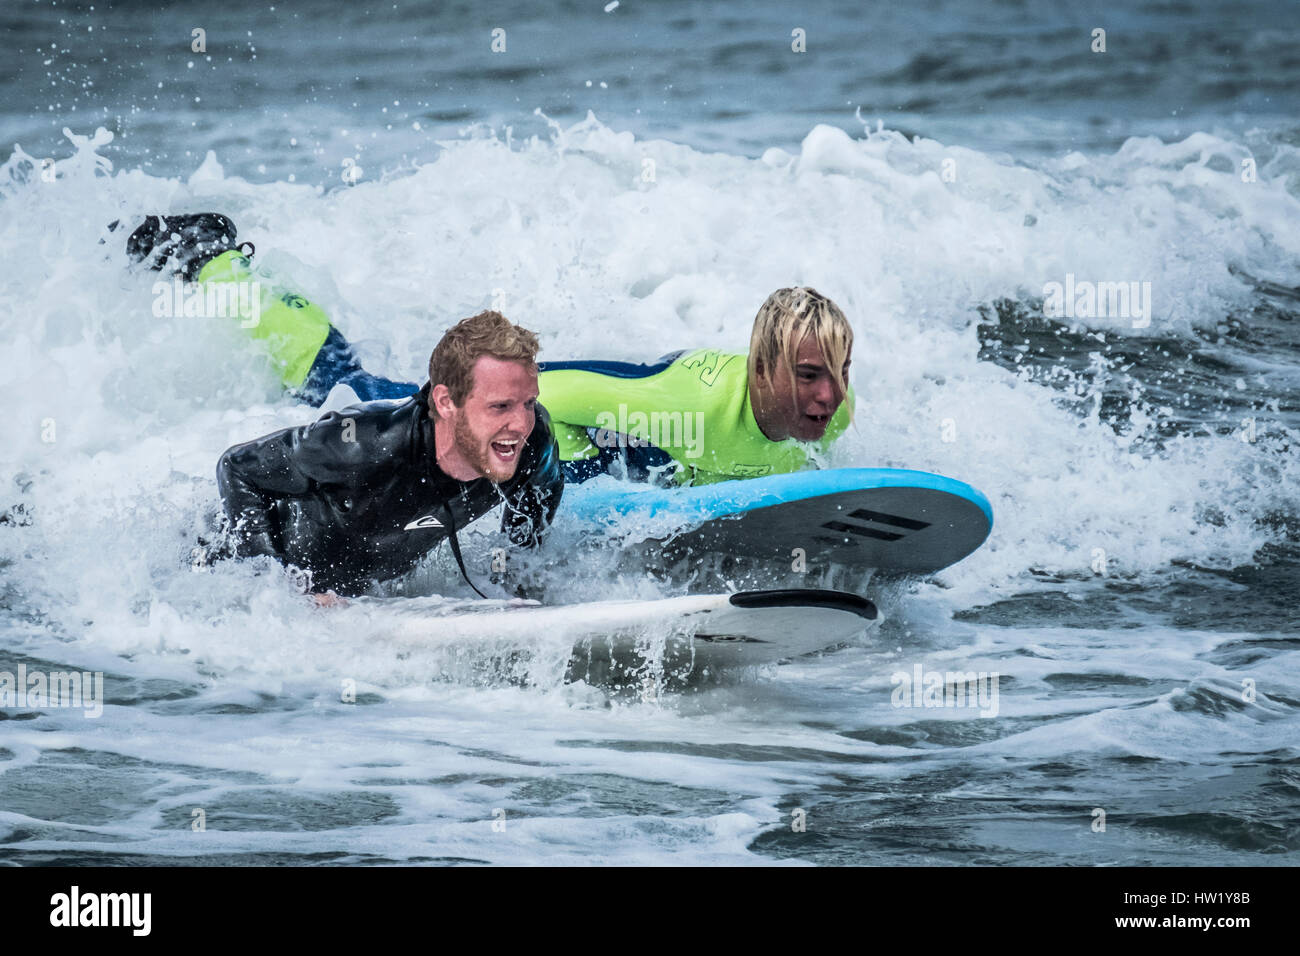 Two surfers in Klitmoller which is a popular surfing destination in Northern Denmark. Klitmoller is also known as - Stock Image